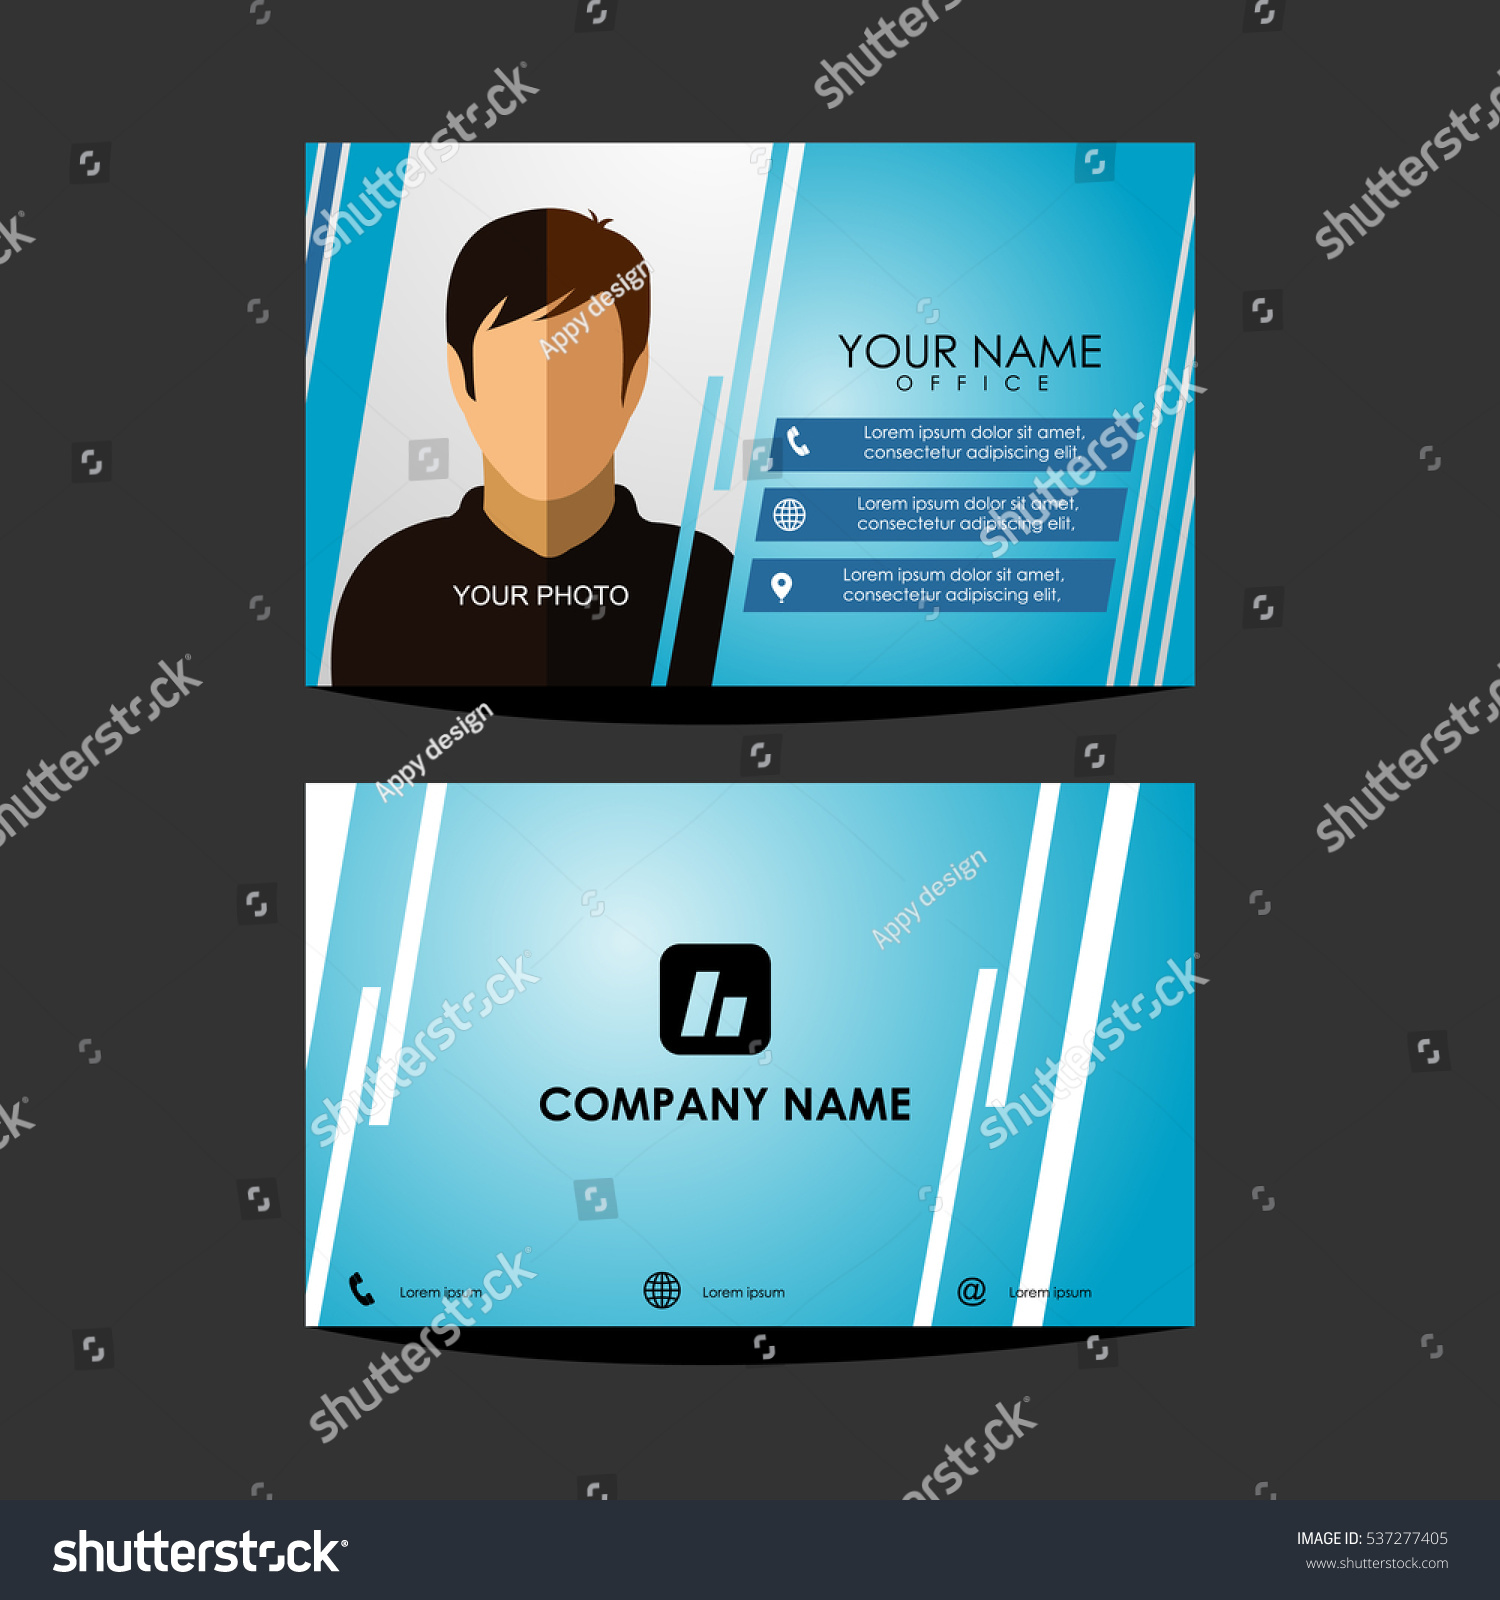 537277405 Shutterstock Business Template Vector Design Id